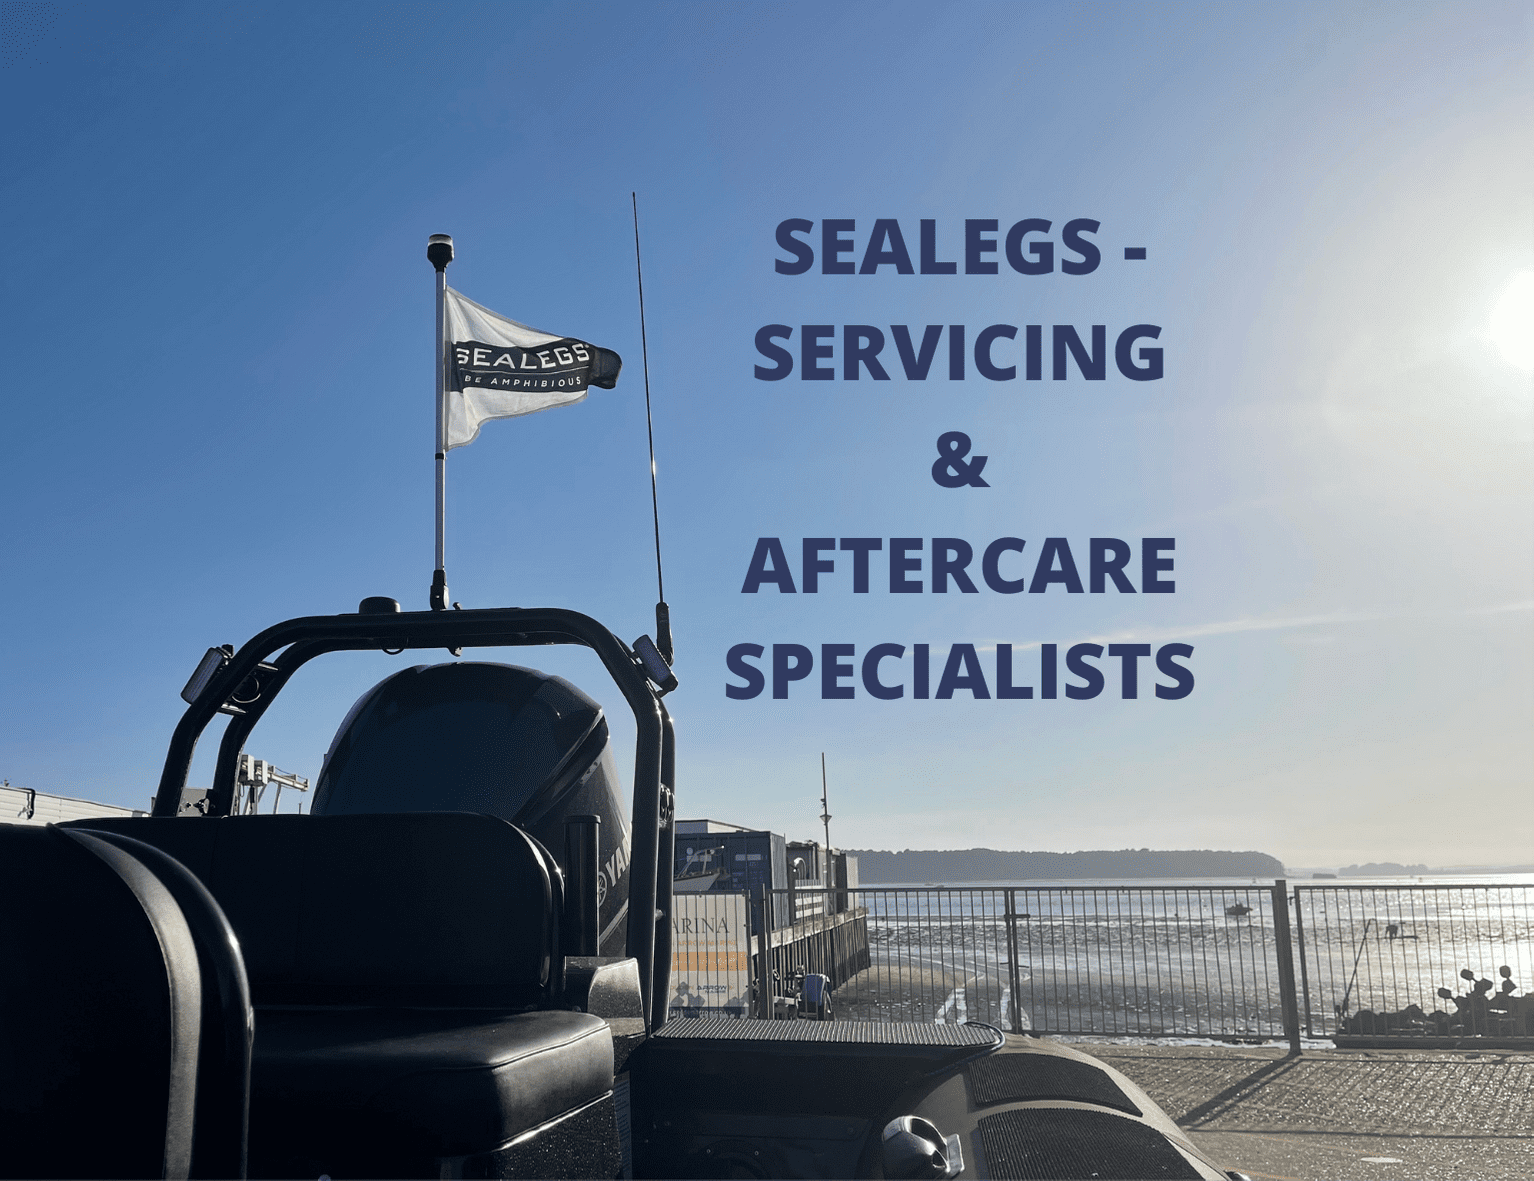 LAND TO SEA SEALEGS SERVICING